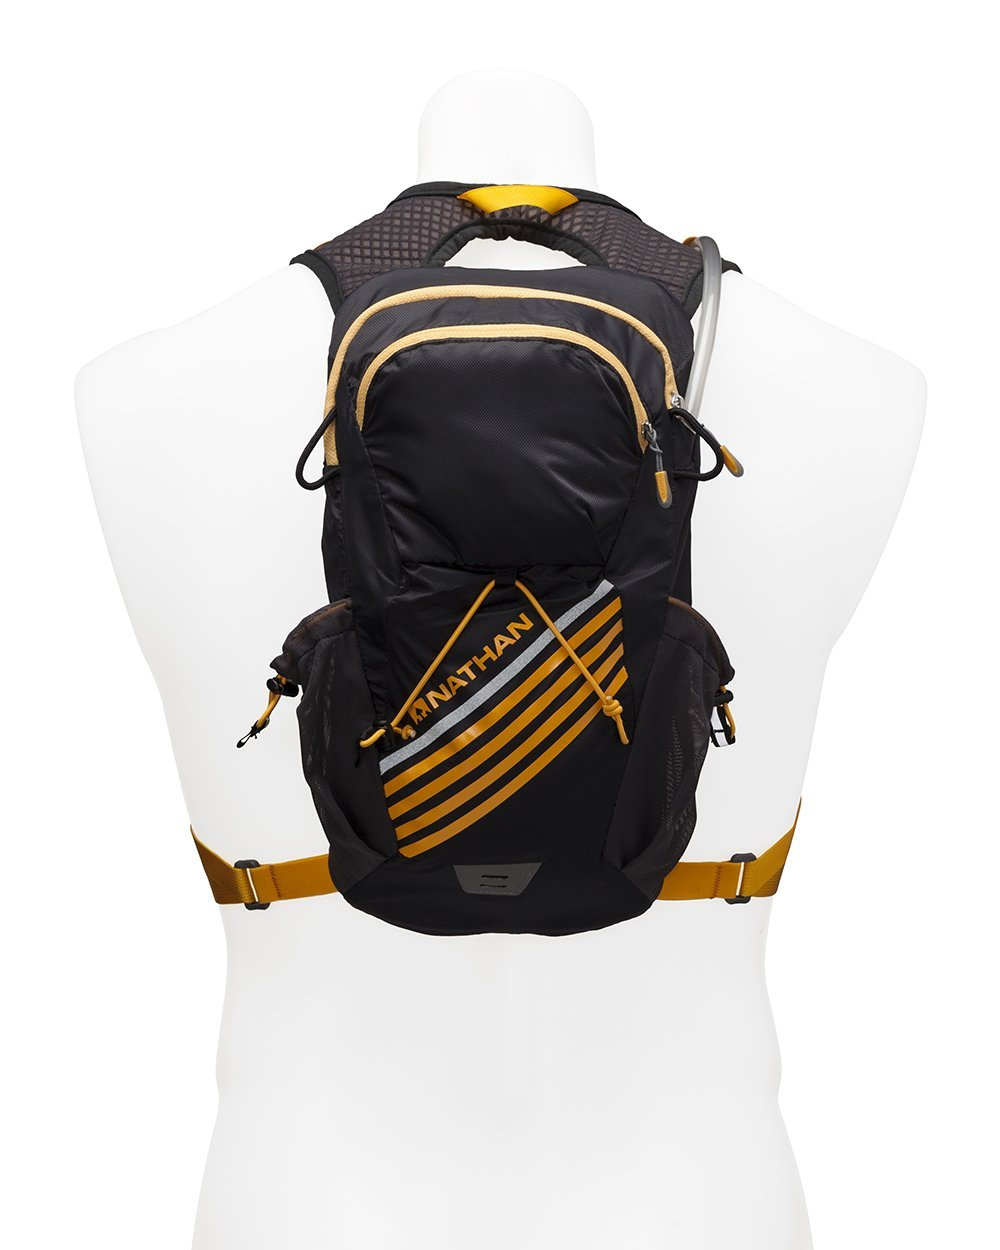 Nathan Firestorm Race Vest Hydration Pack, 2-Liter, One Size, Nathan Grey by Nathan